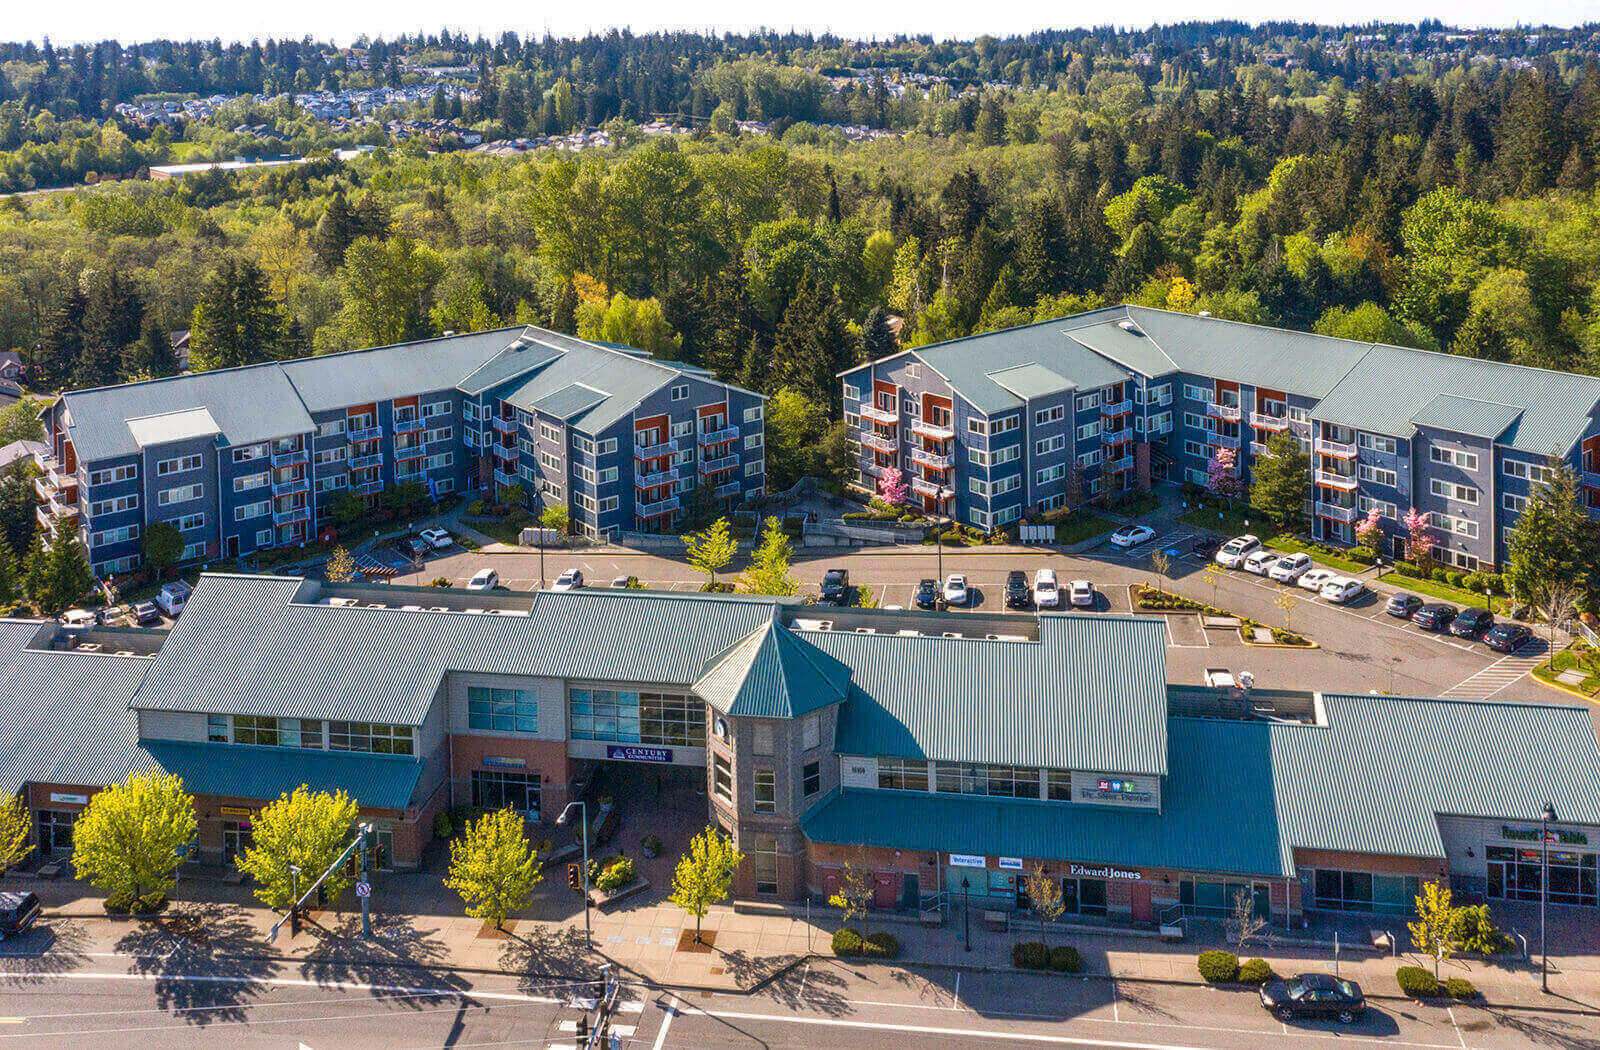 Aerial View at Newberry Square, Lynnwood, WA